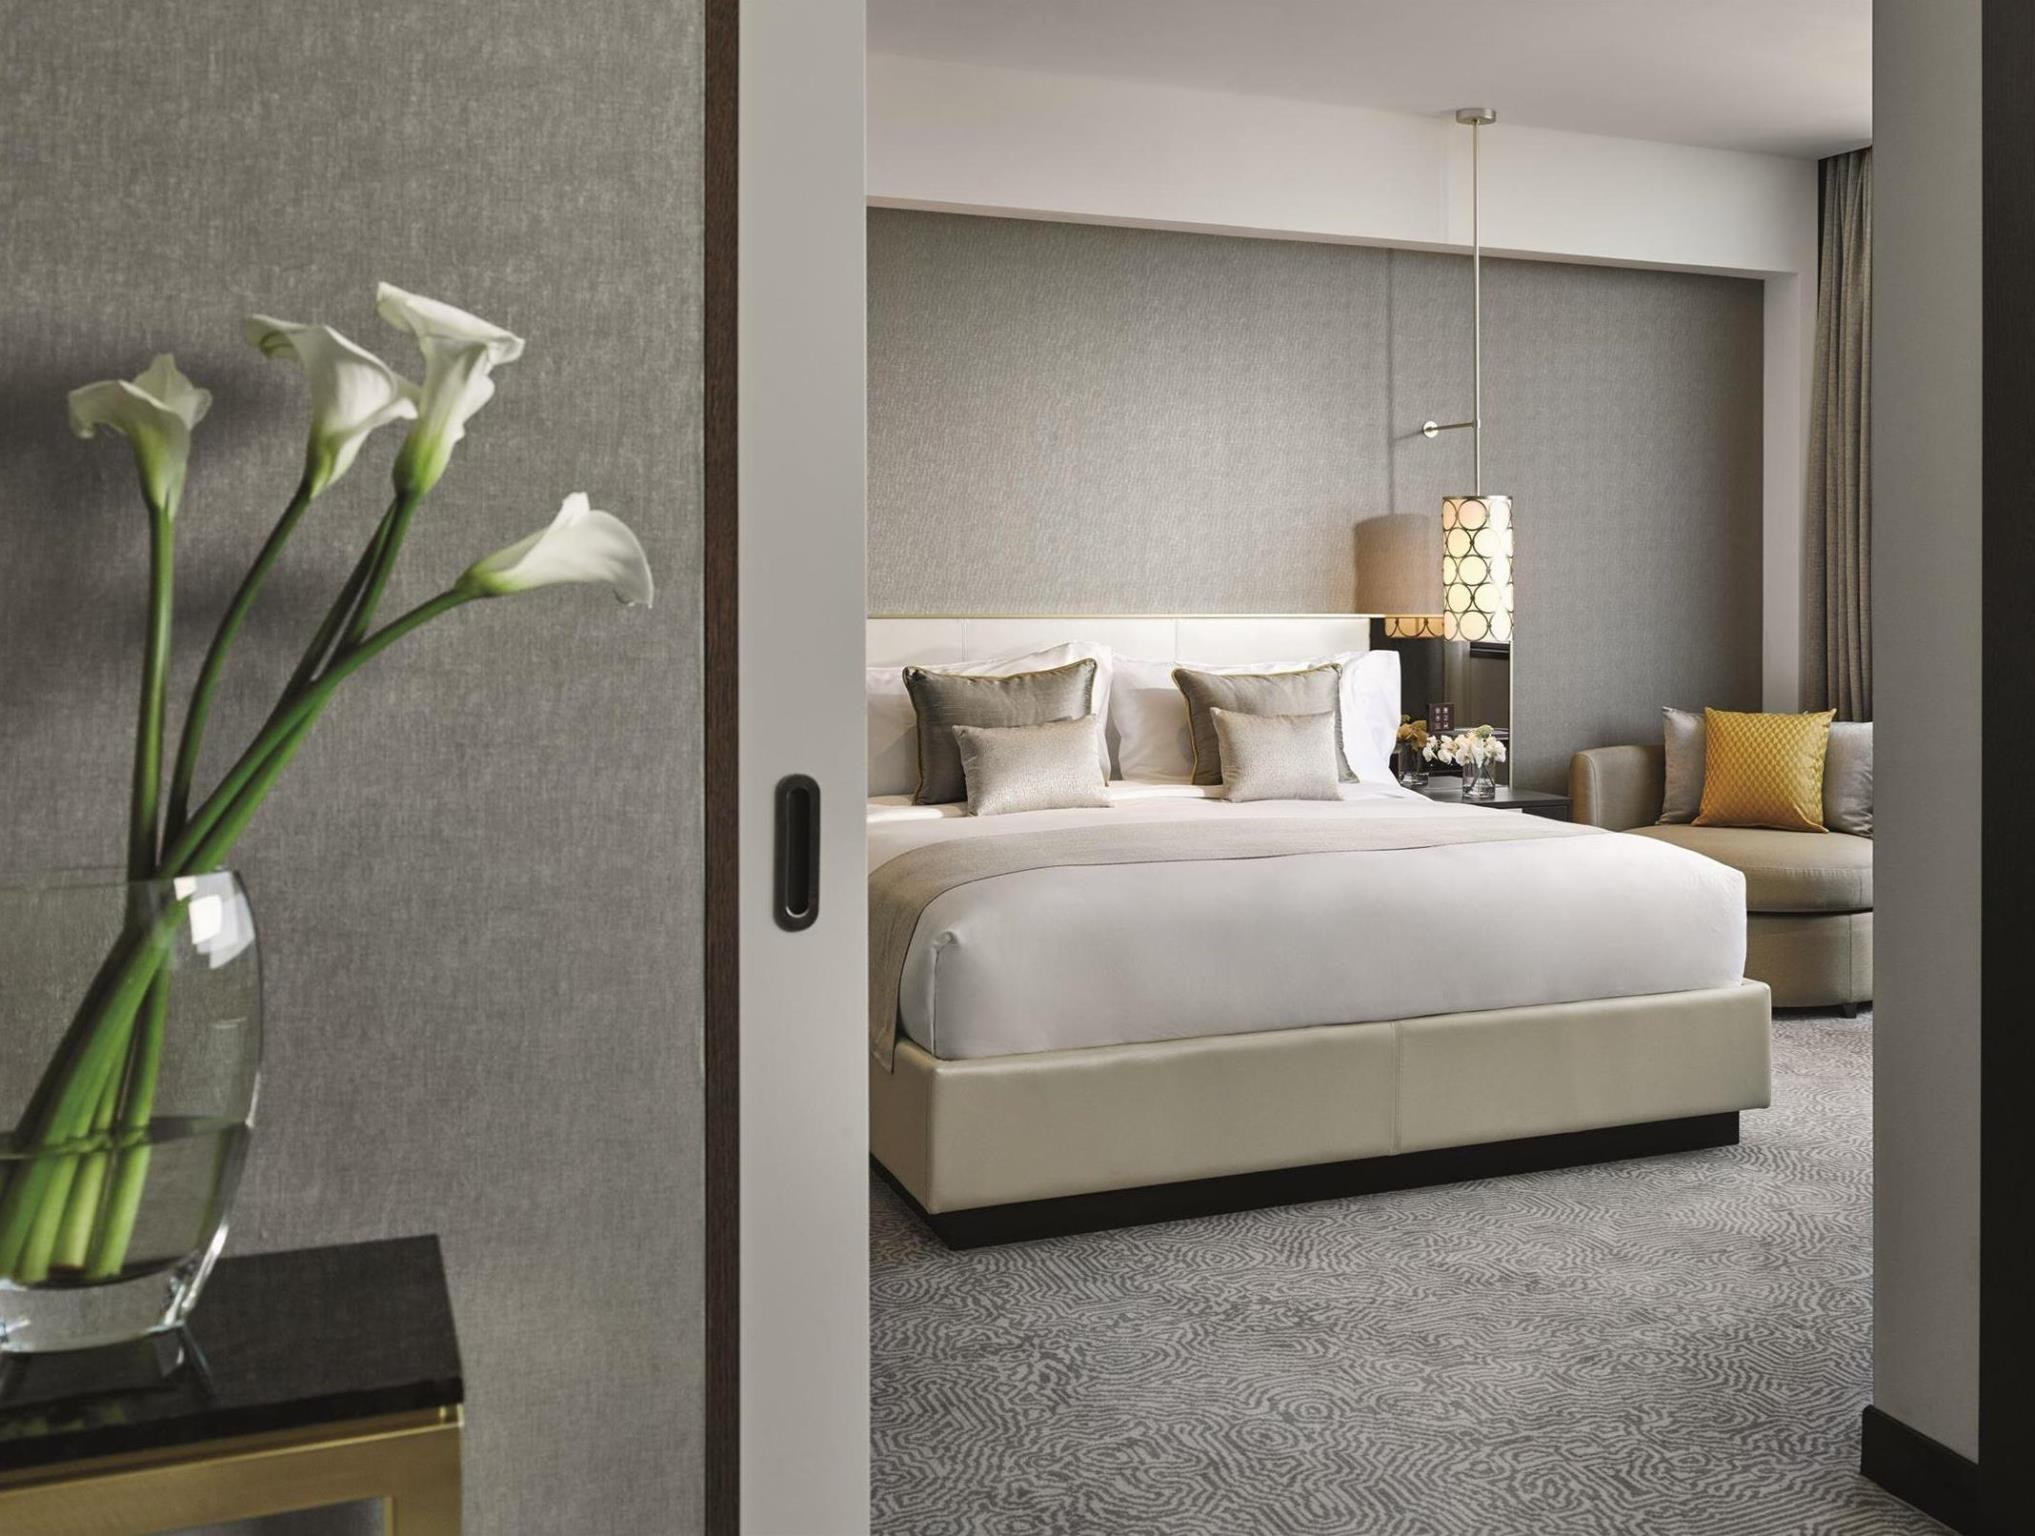 Signature套房(特大床) (Signature Suite with King Bed)